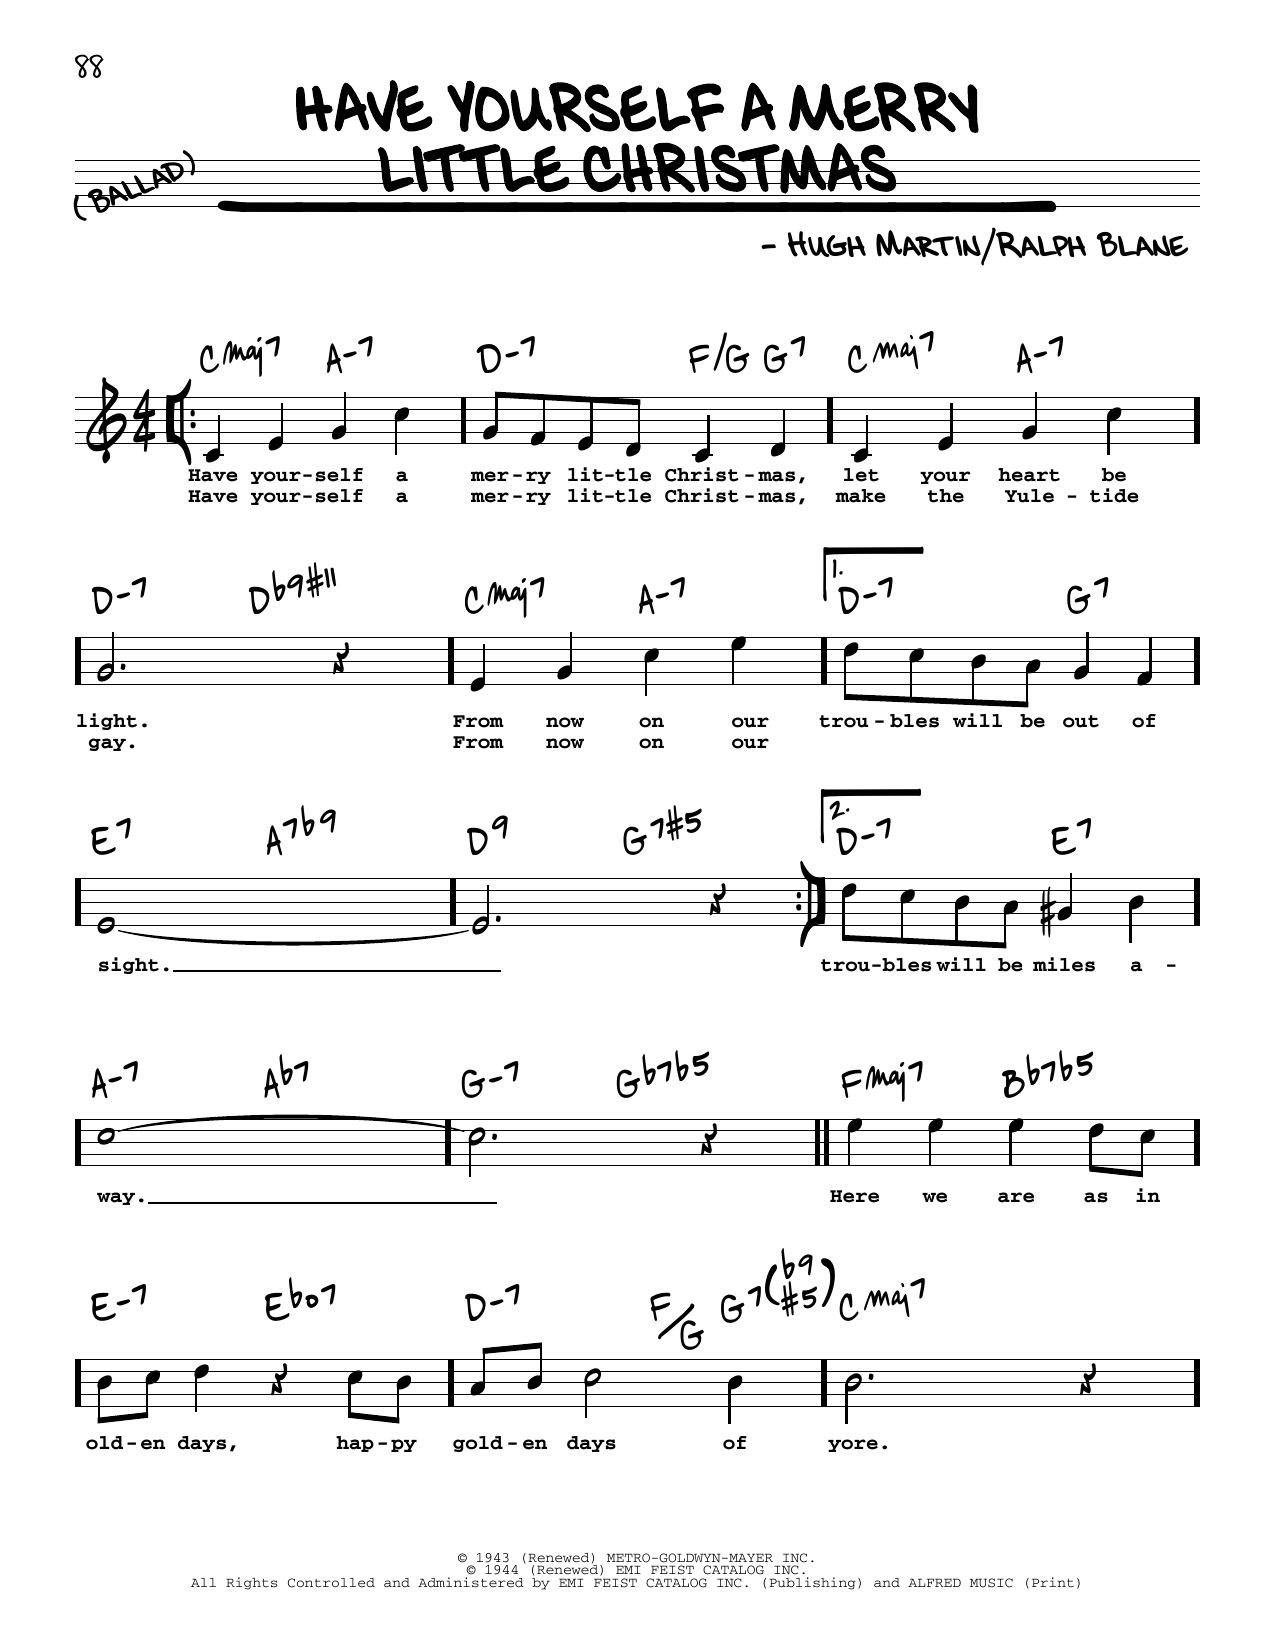 Have Yourself A Merry Little Christmas Lead Sheet.Sheet Music Digital Files To Print Licensed Ralph Blane